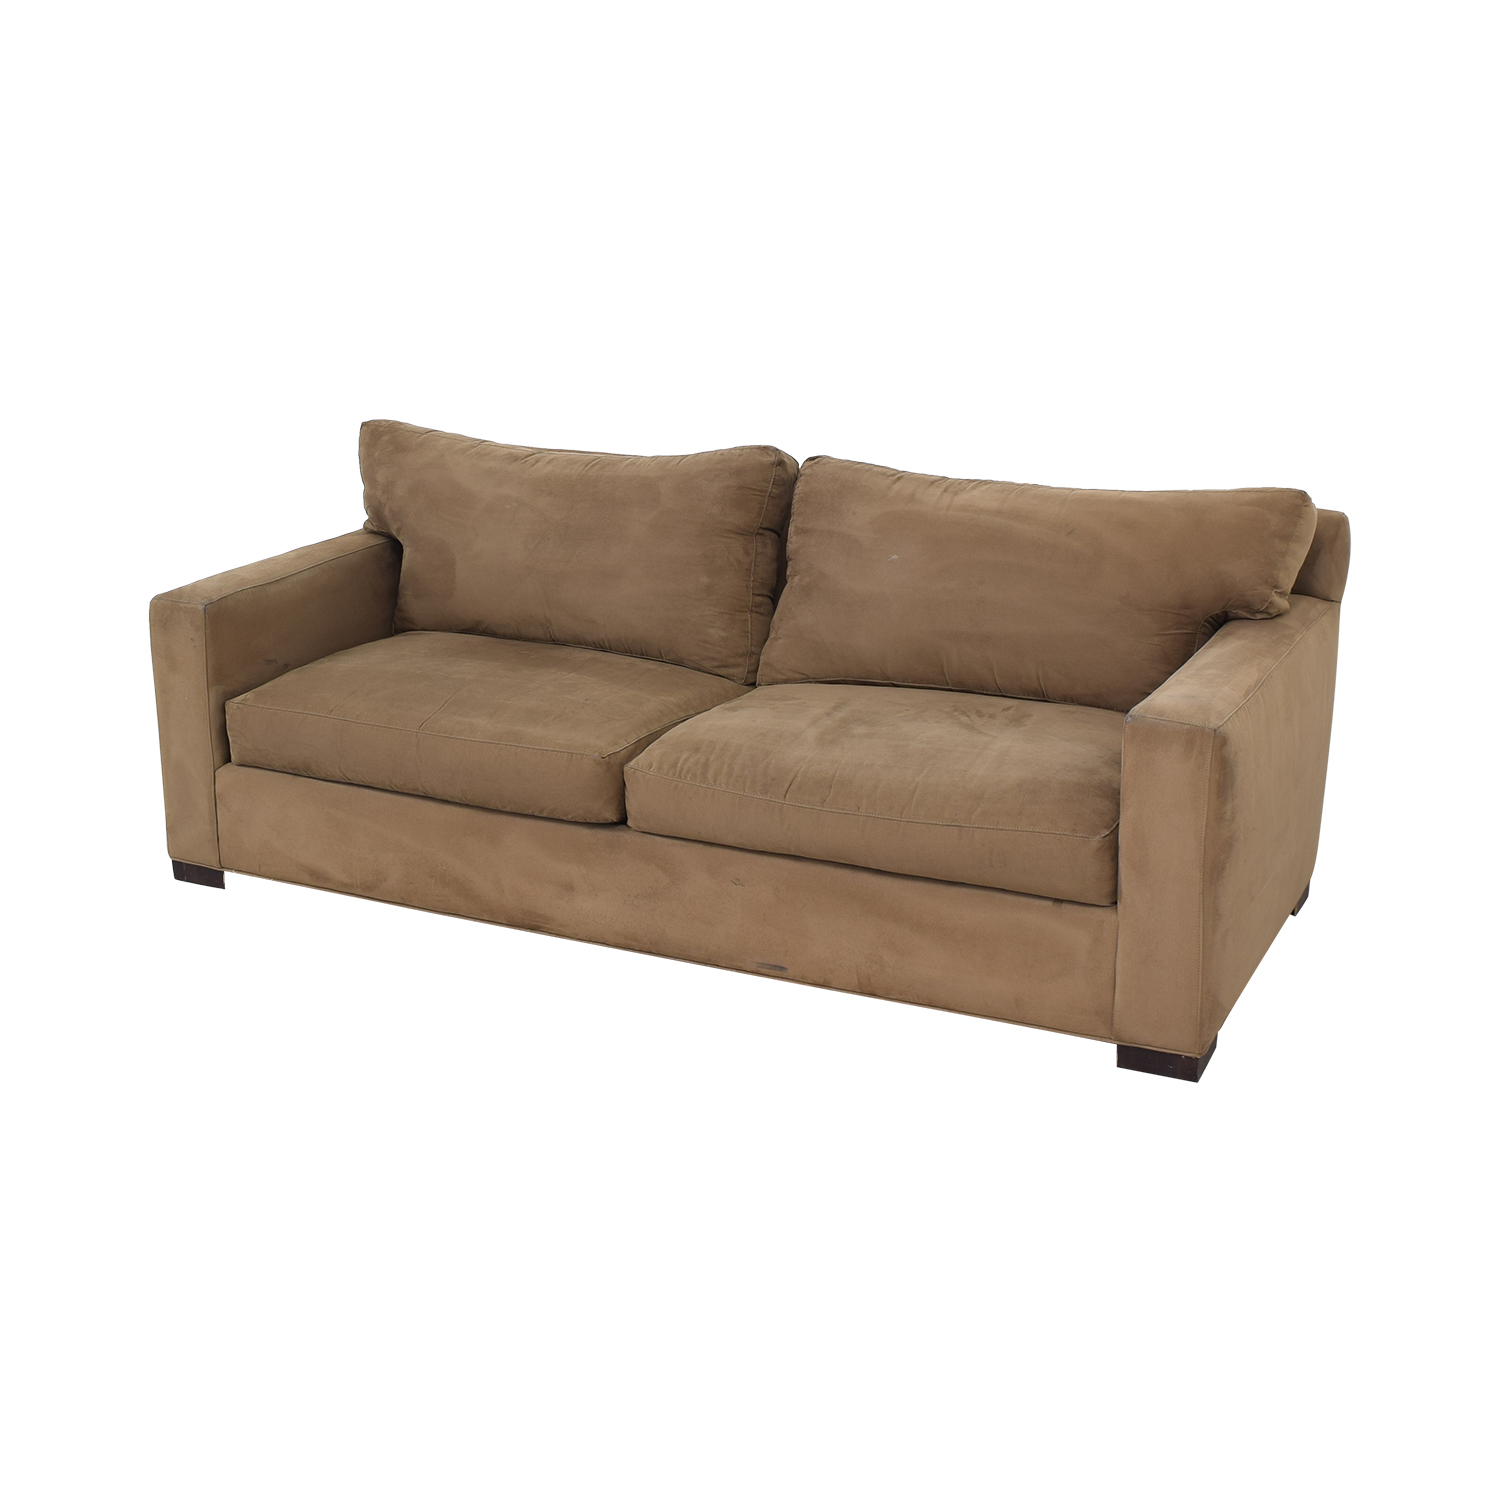 shop Crate & Barrel Crate & Barrel Axis 2-Seat Sofa online